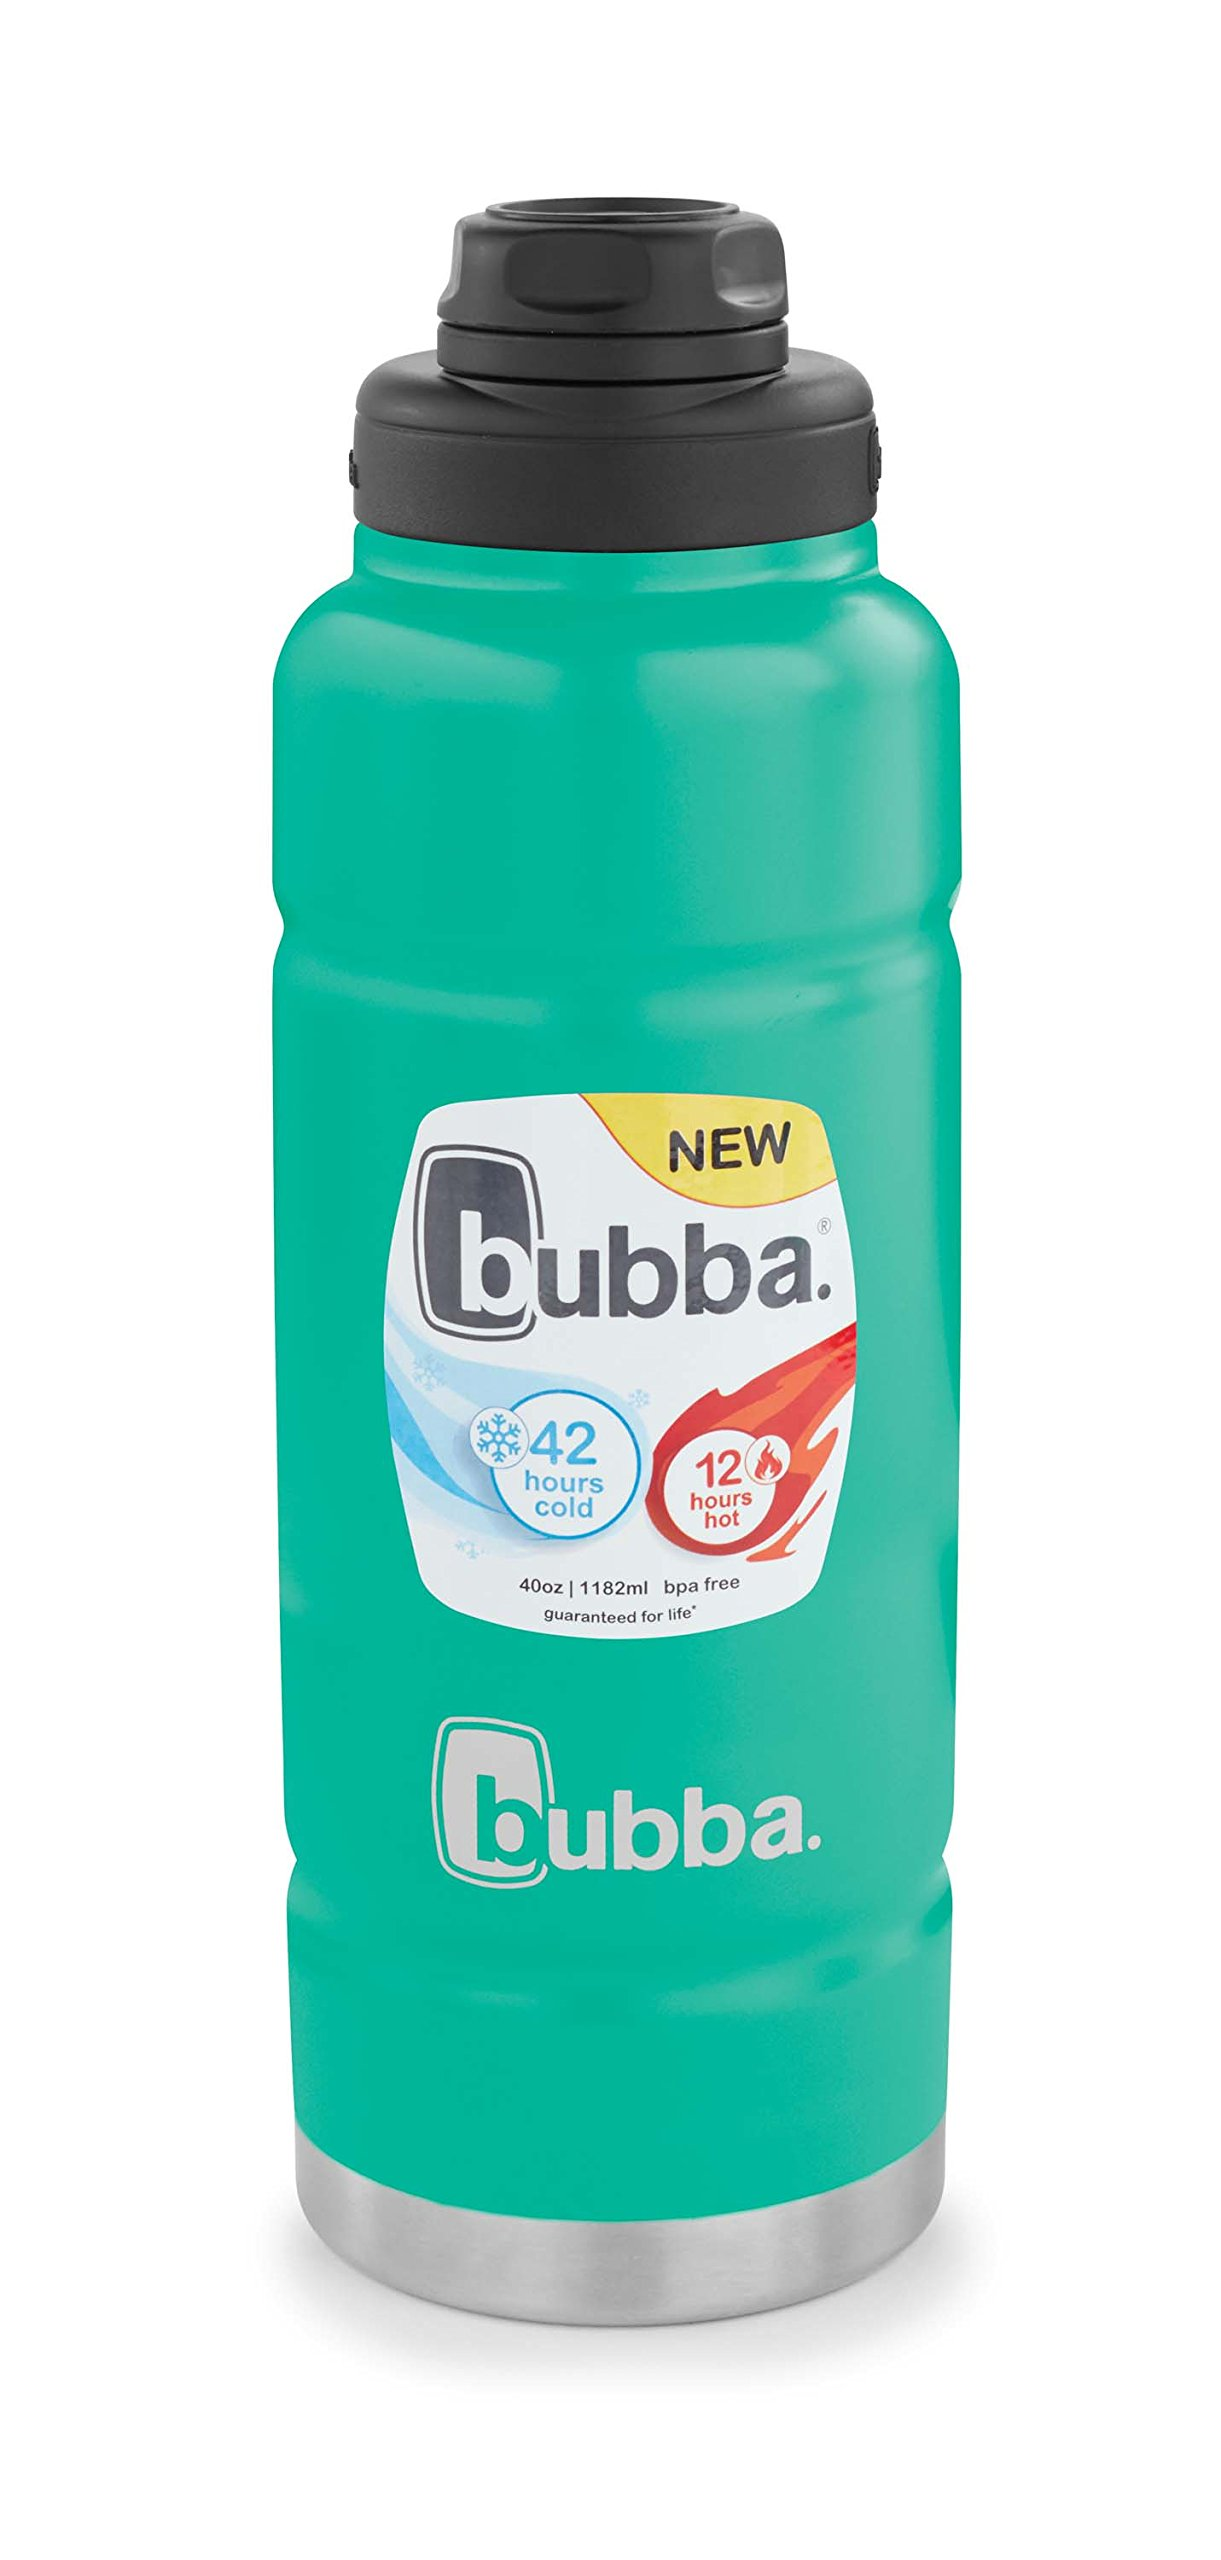 Bubba Trailblazer Vacuum-Insulated Stainless Steel Water Bottle, 40 oz, Rock Candy by bubba (Image #7)